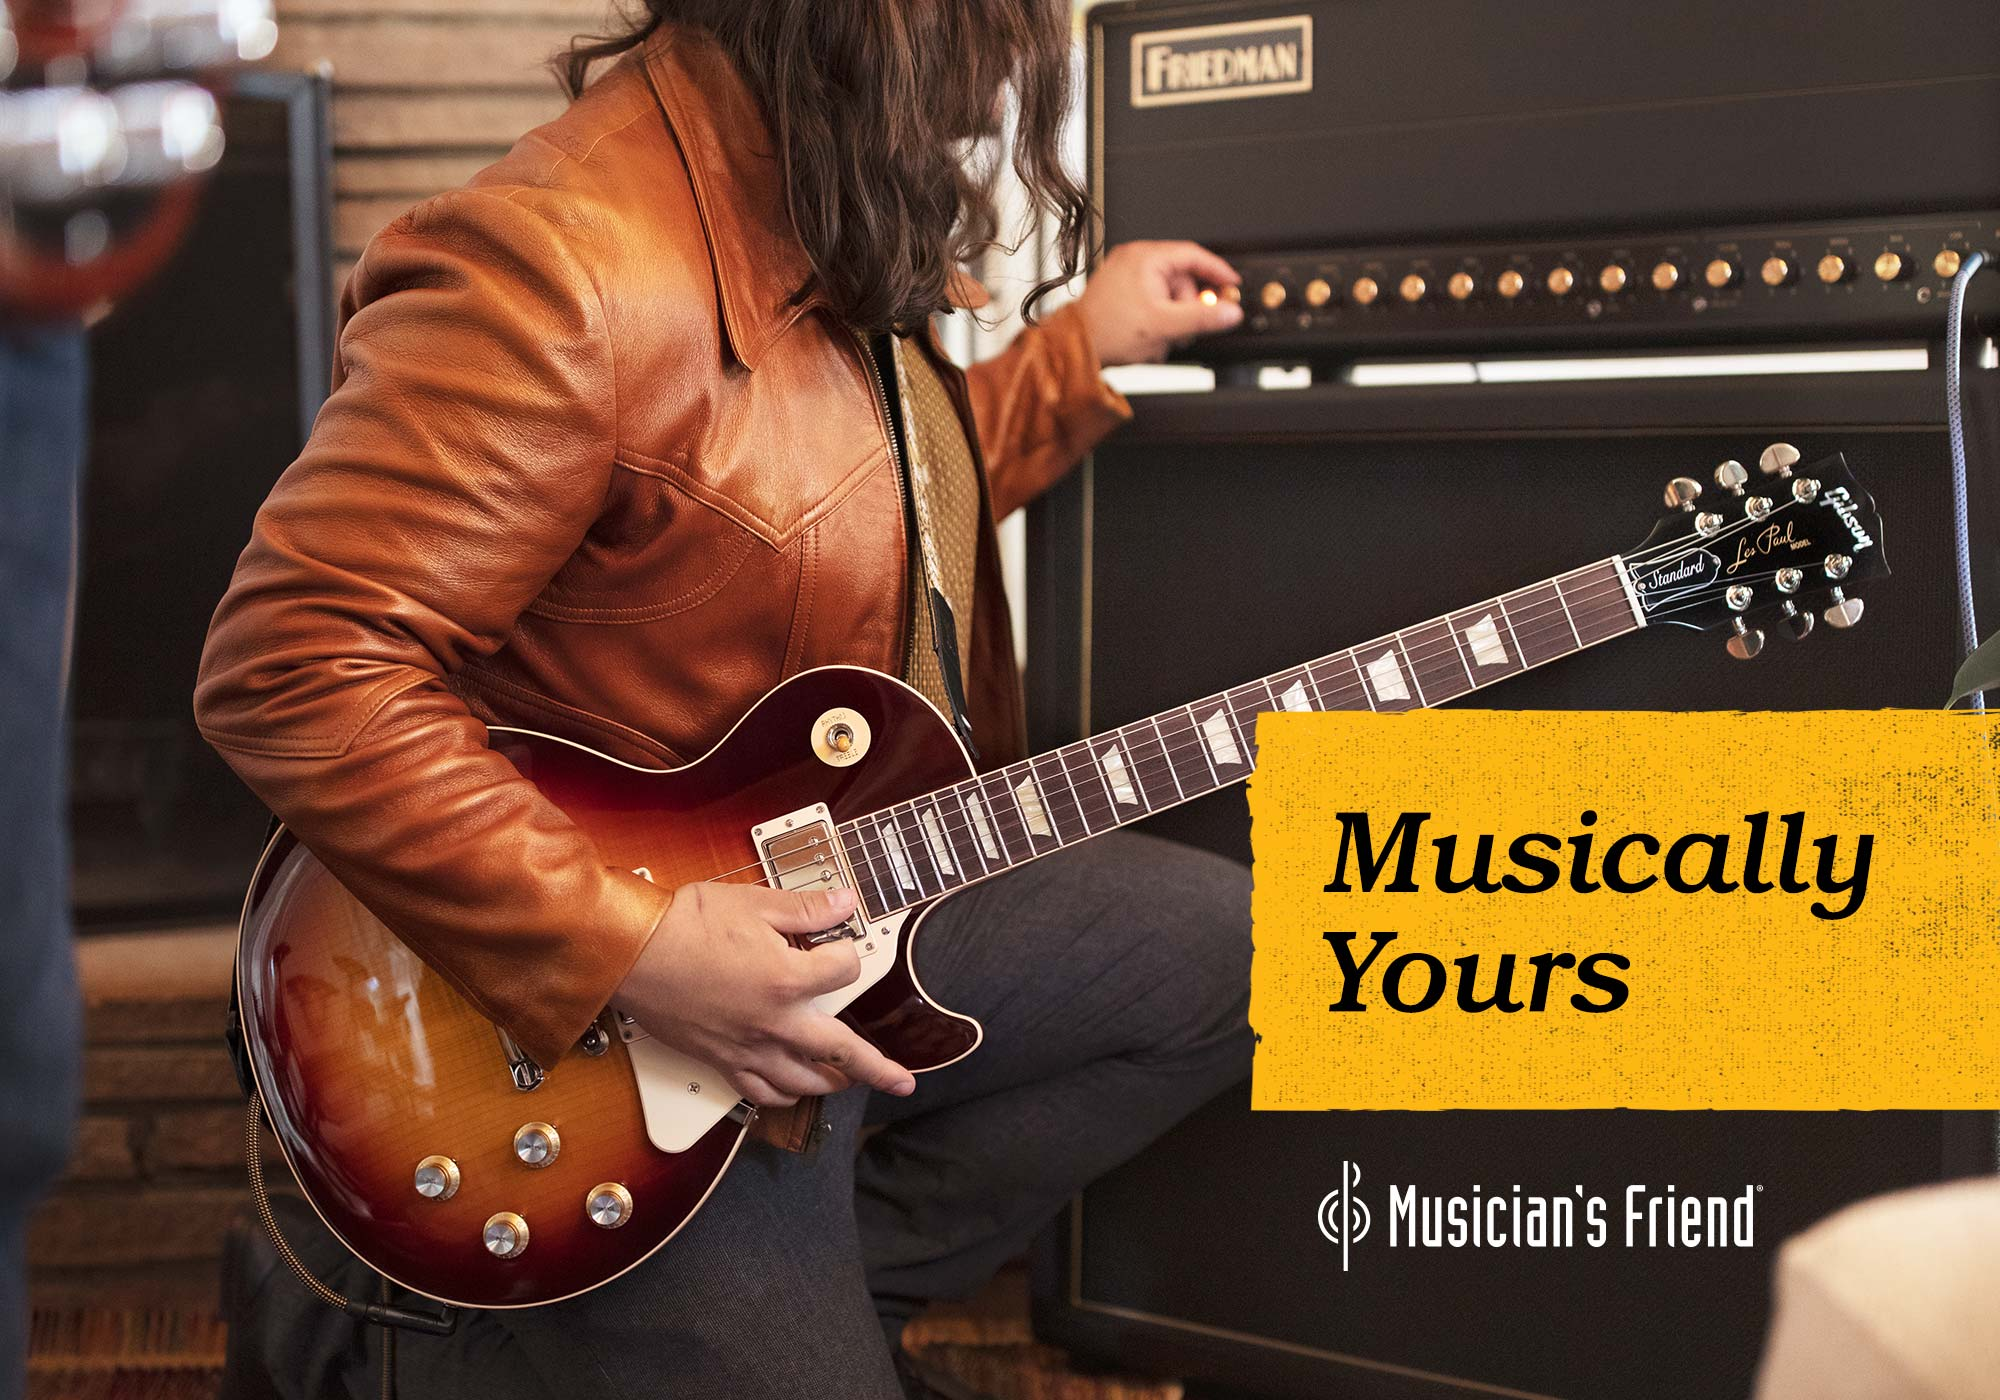 Musician's Friend Rebrand and Creative Campaign for Musically Yours